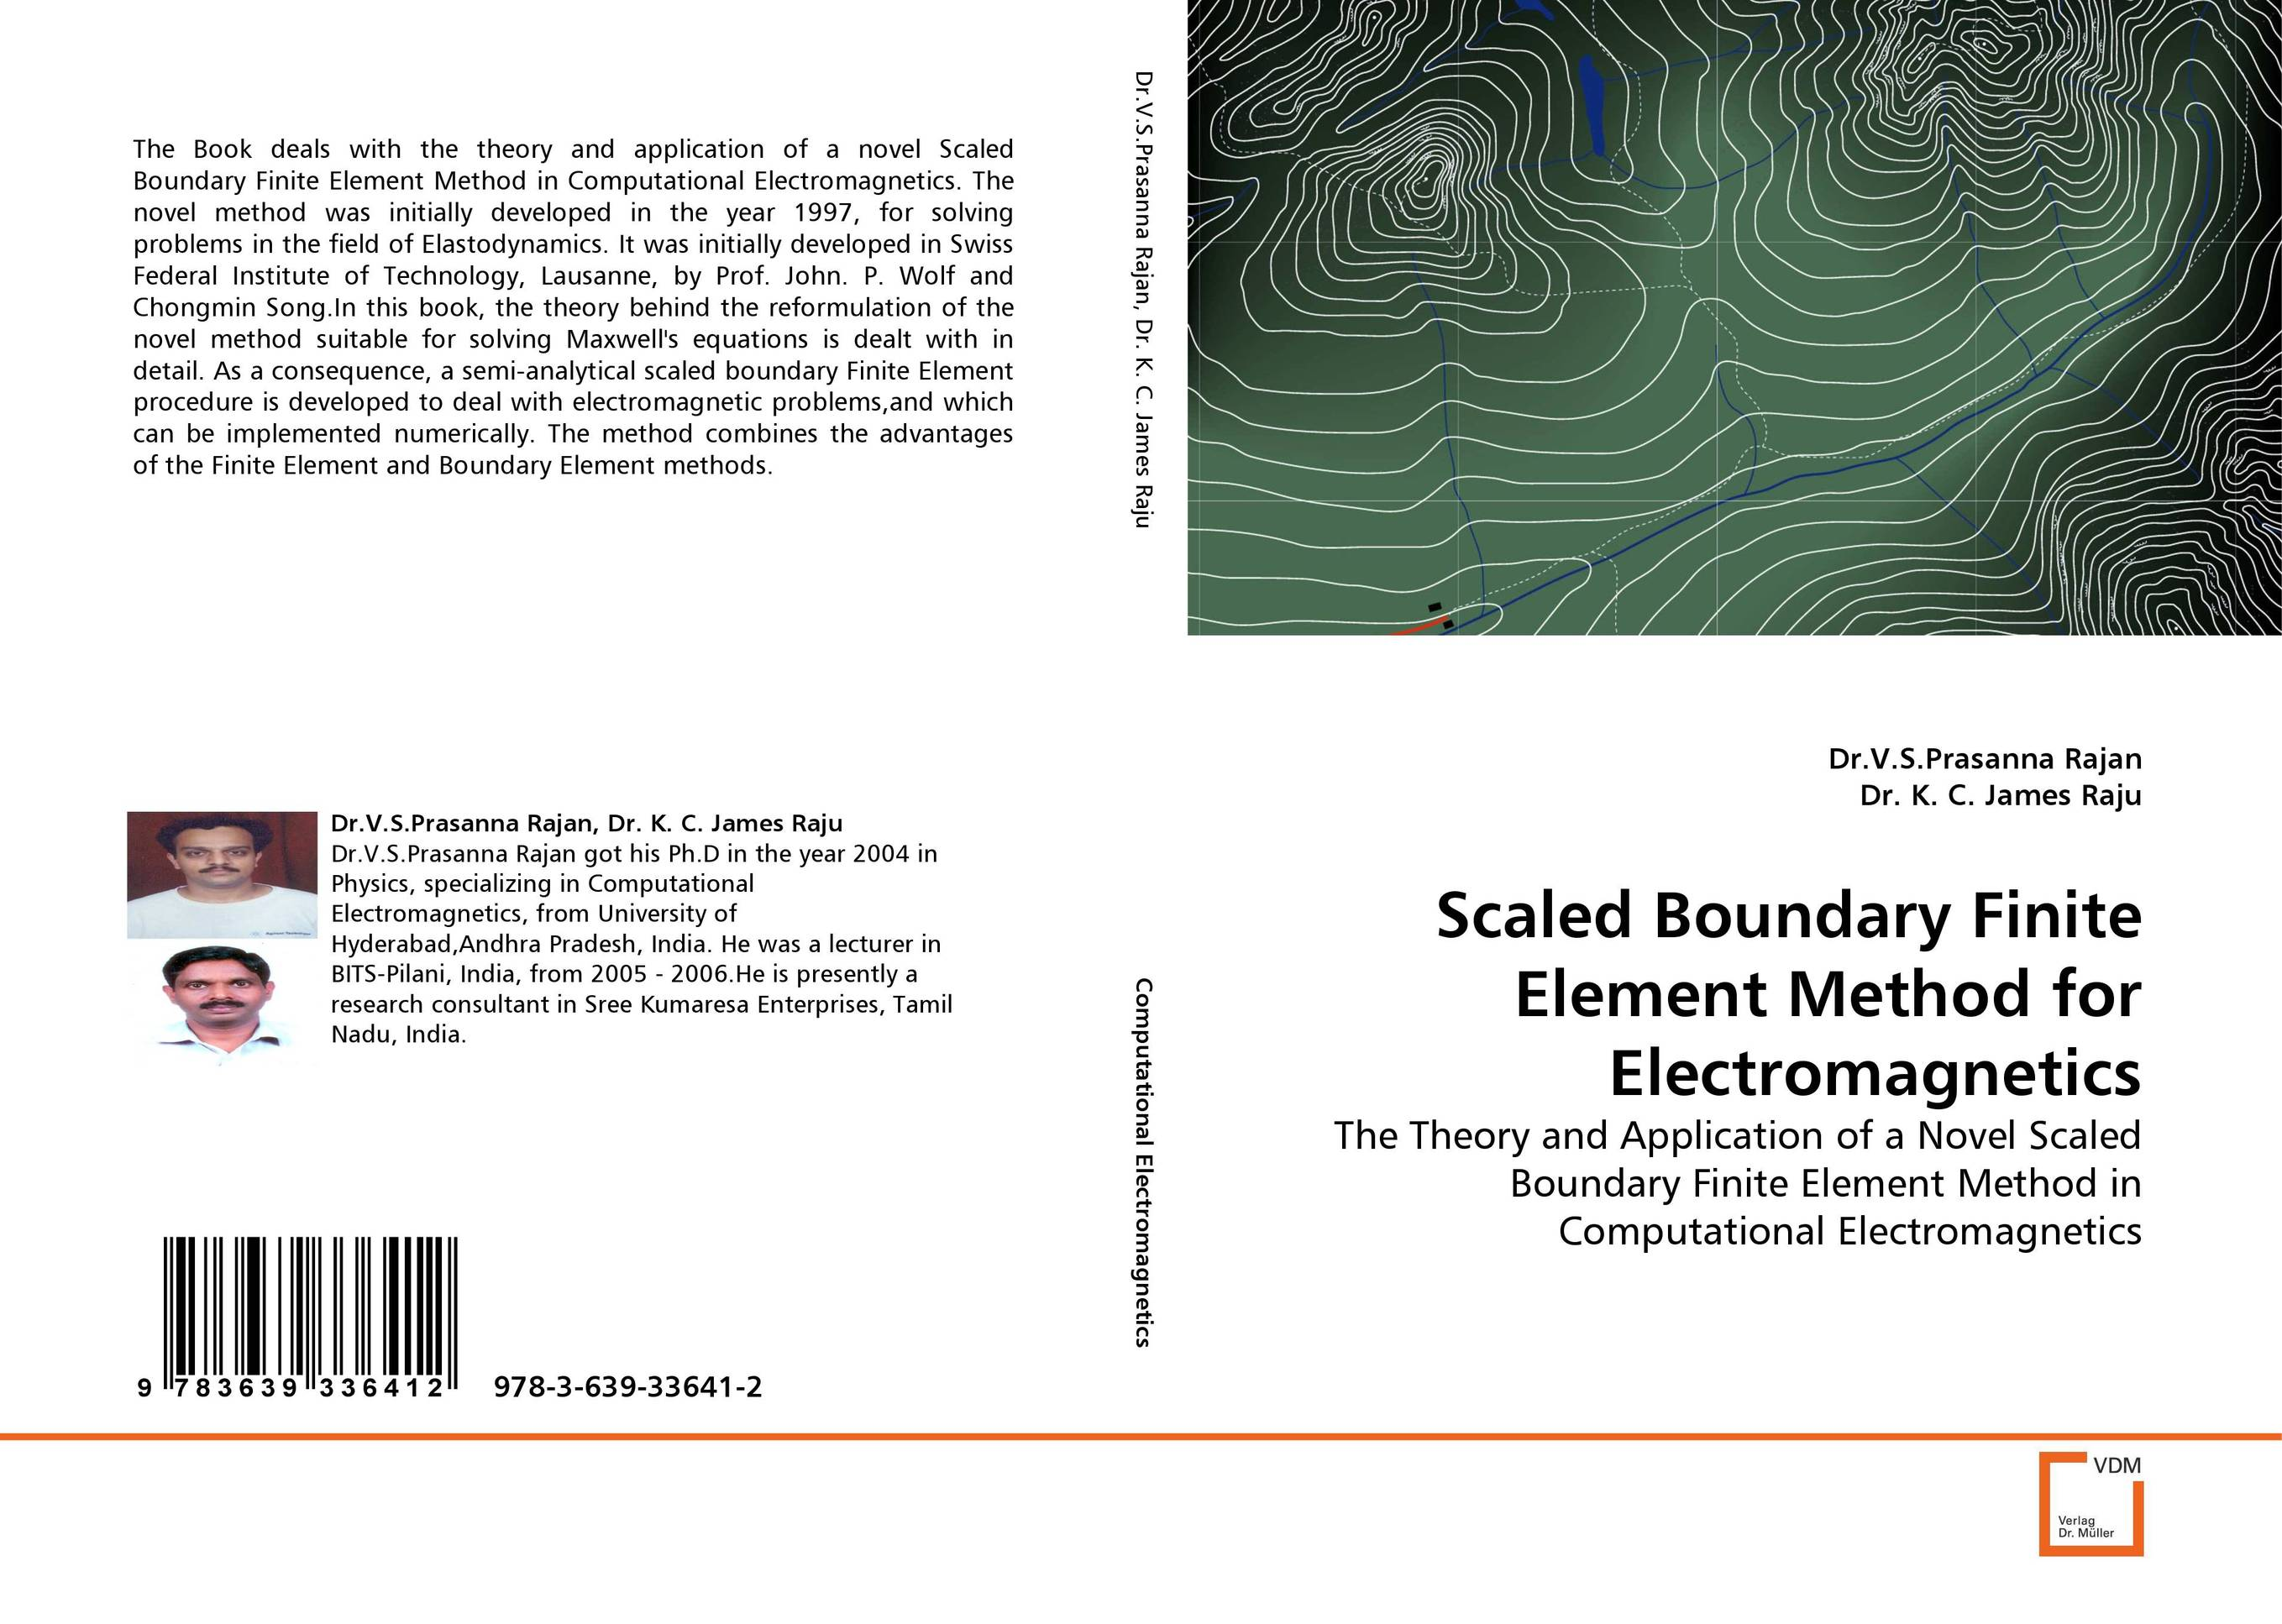 Scaled Boundary Finite Element Method for Electromagnetics a novel valuation method for a novel industry